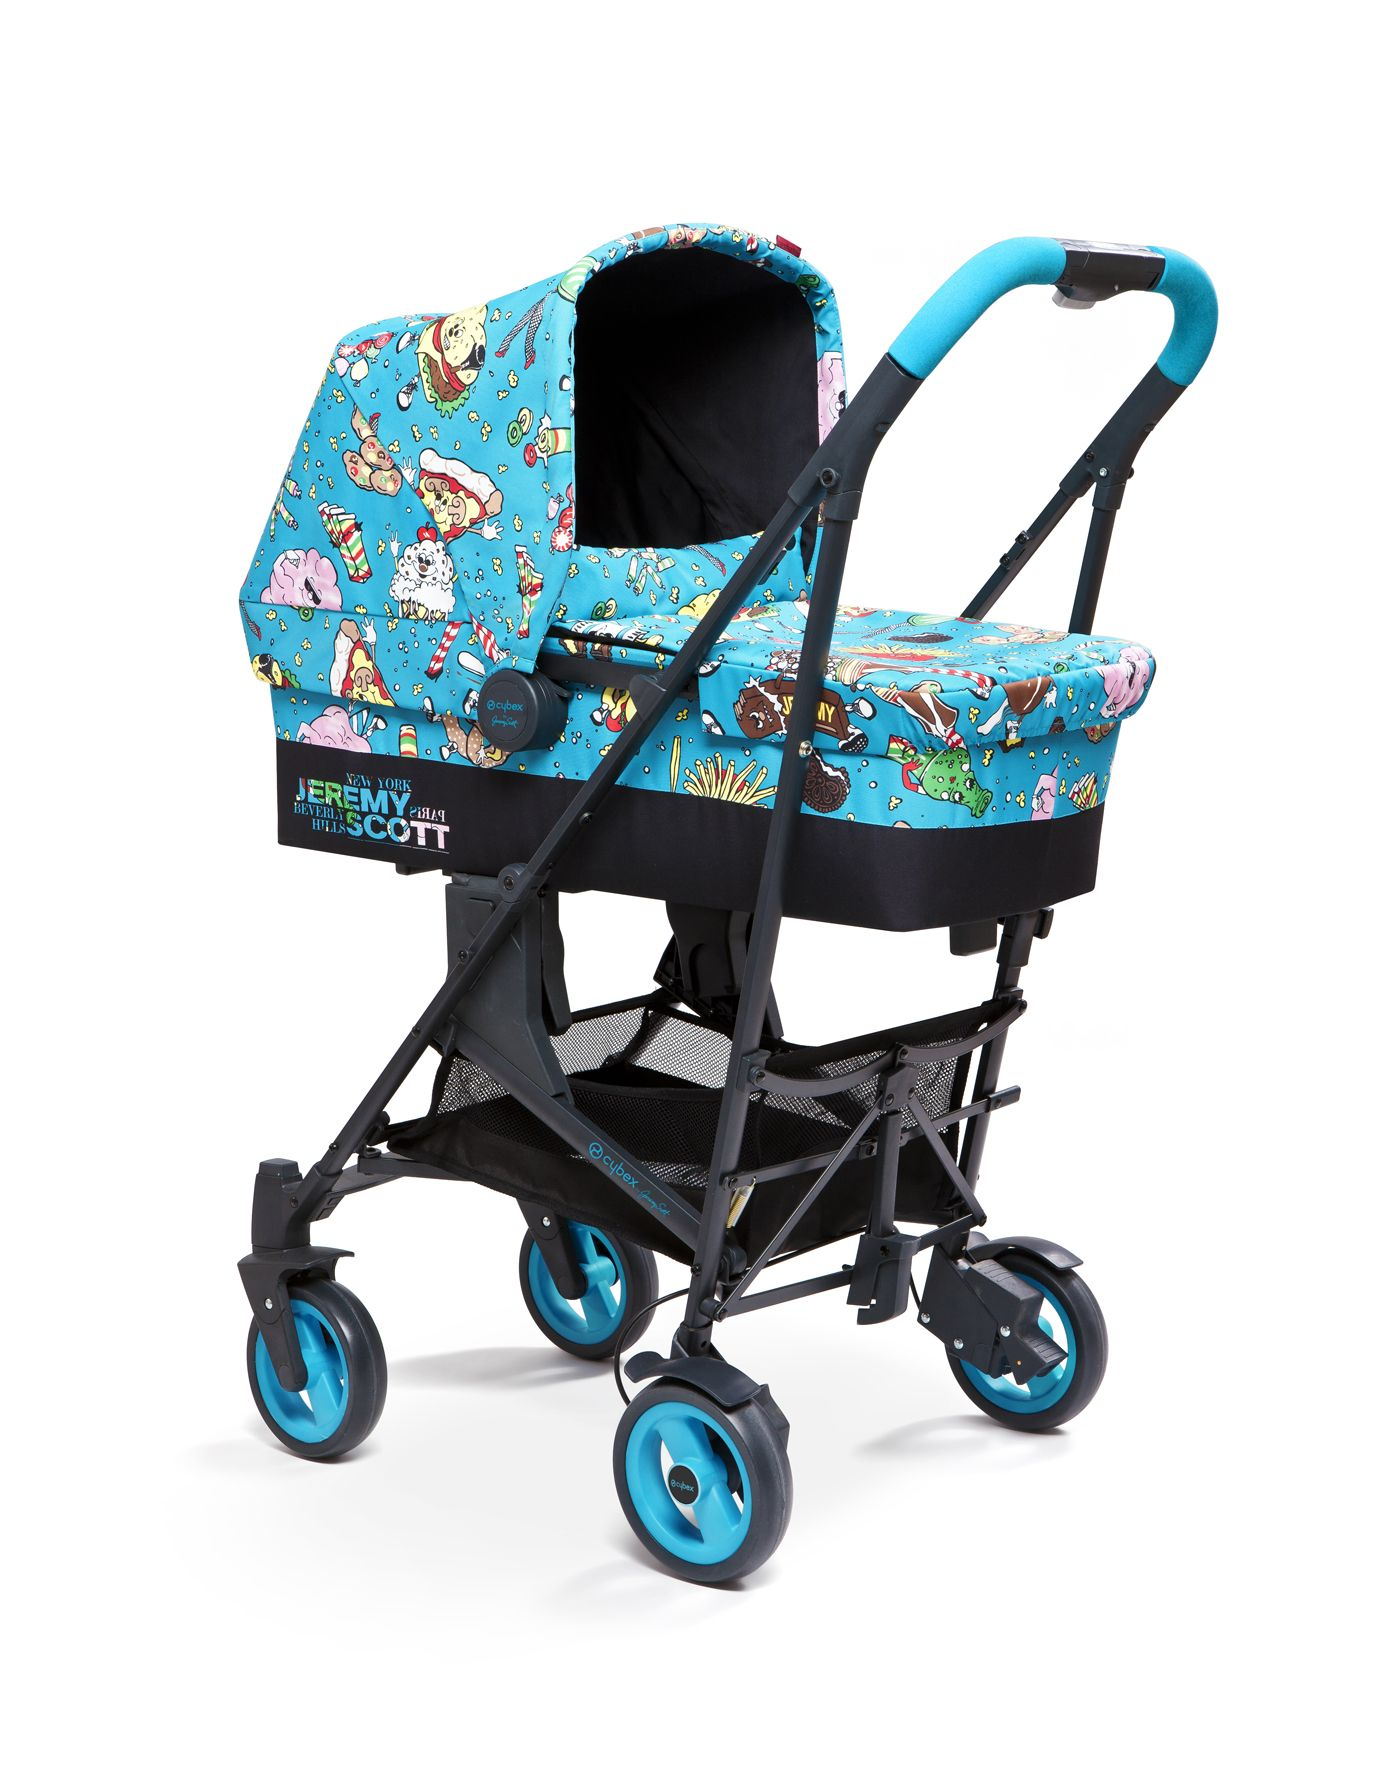 CYBEX by Jeremy Scott (With images) Baby strollers